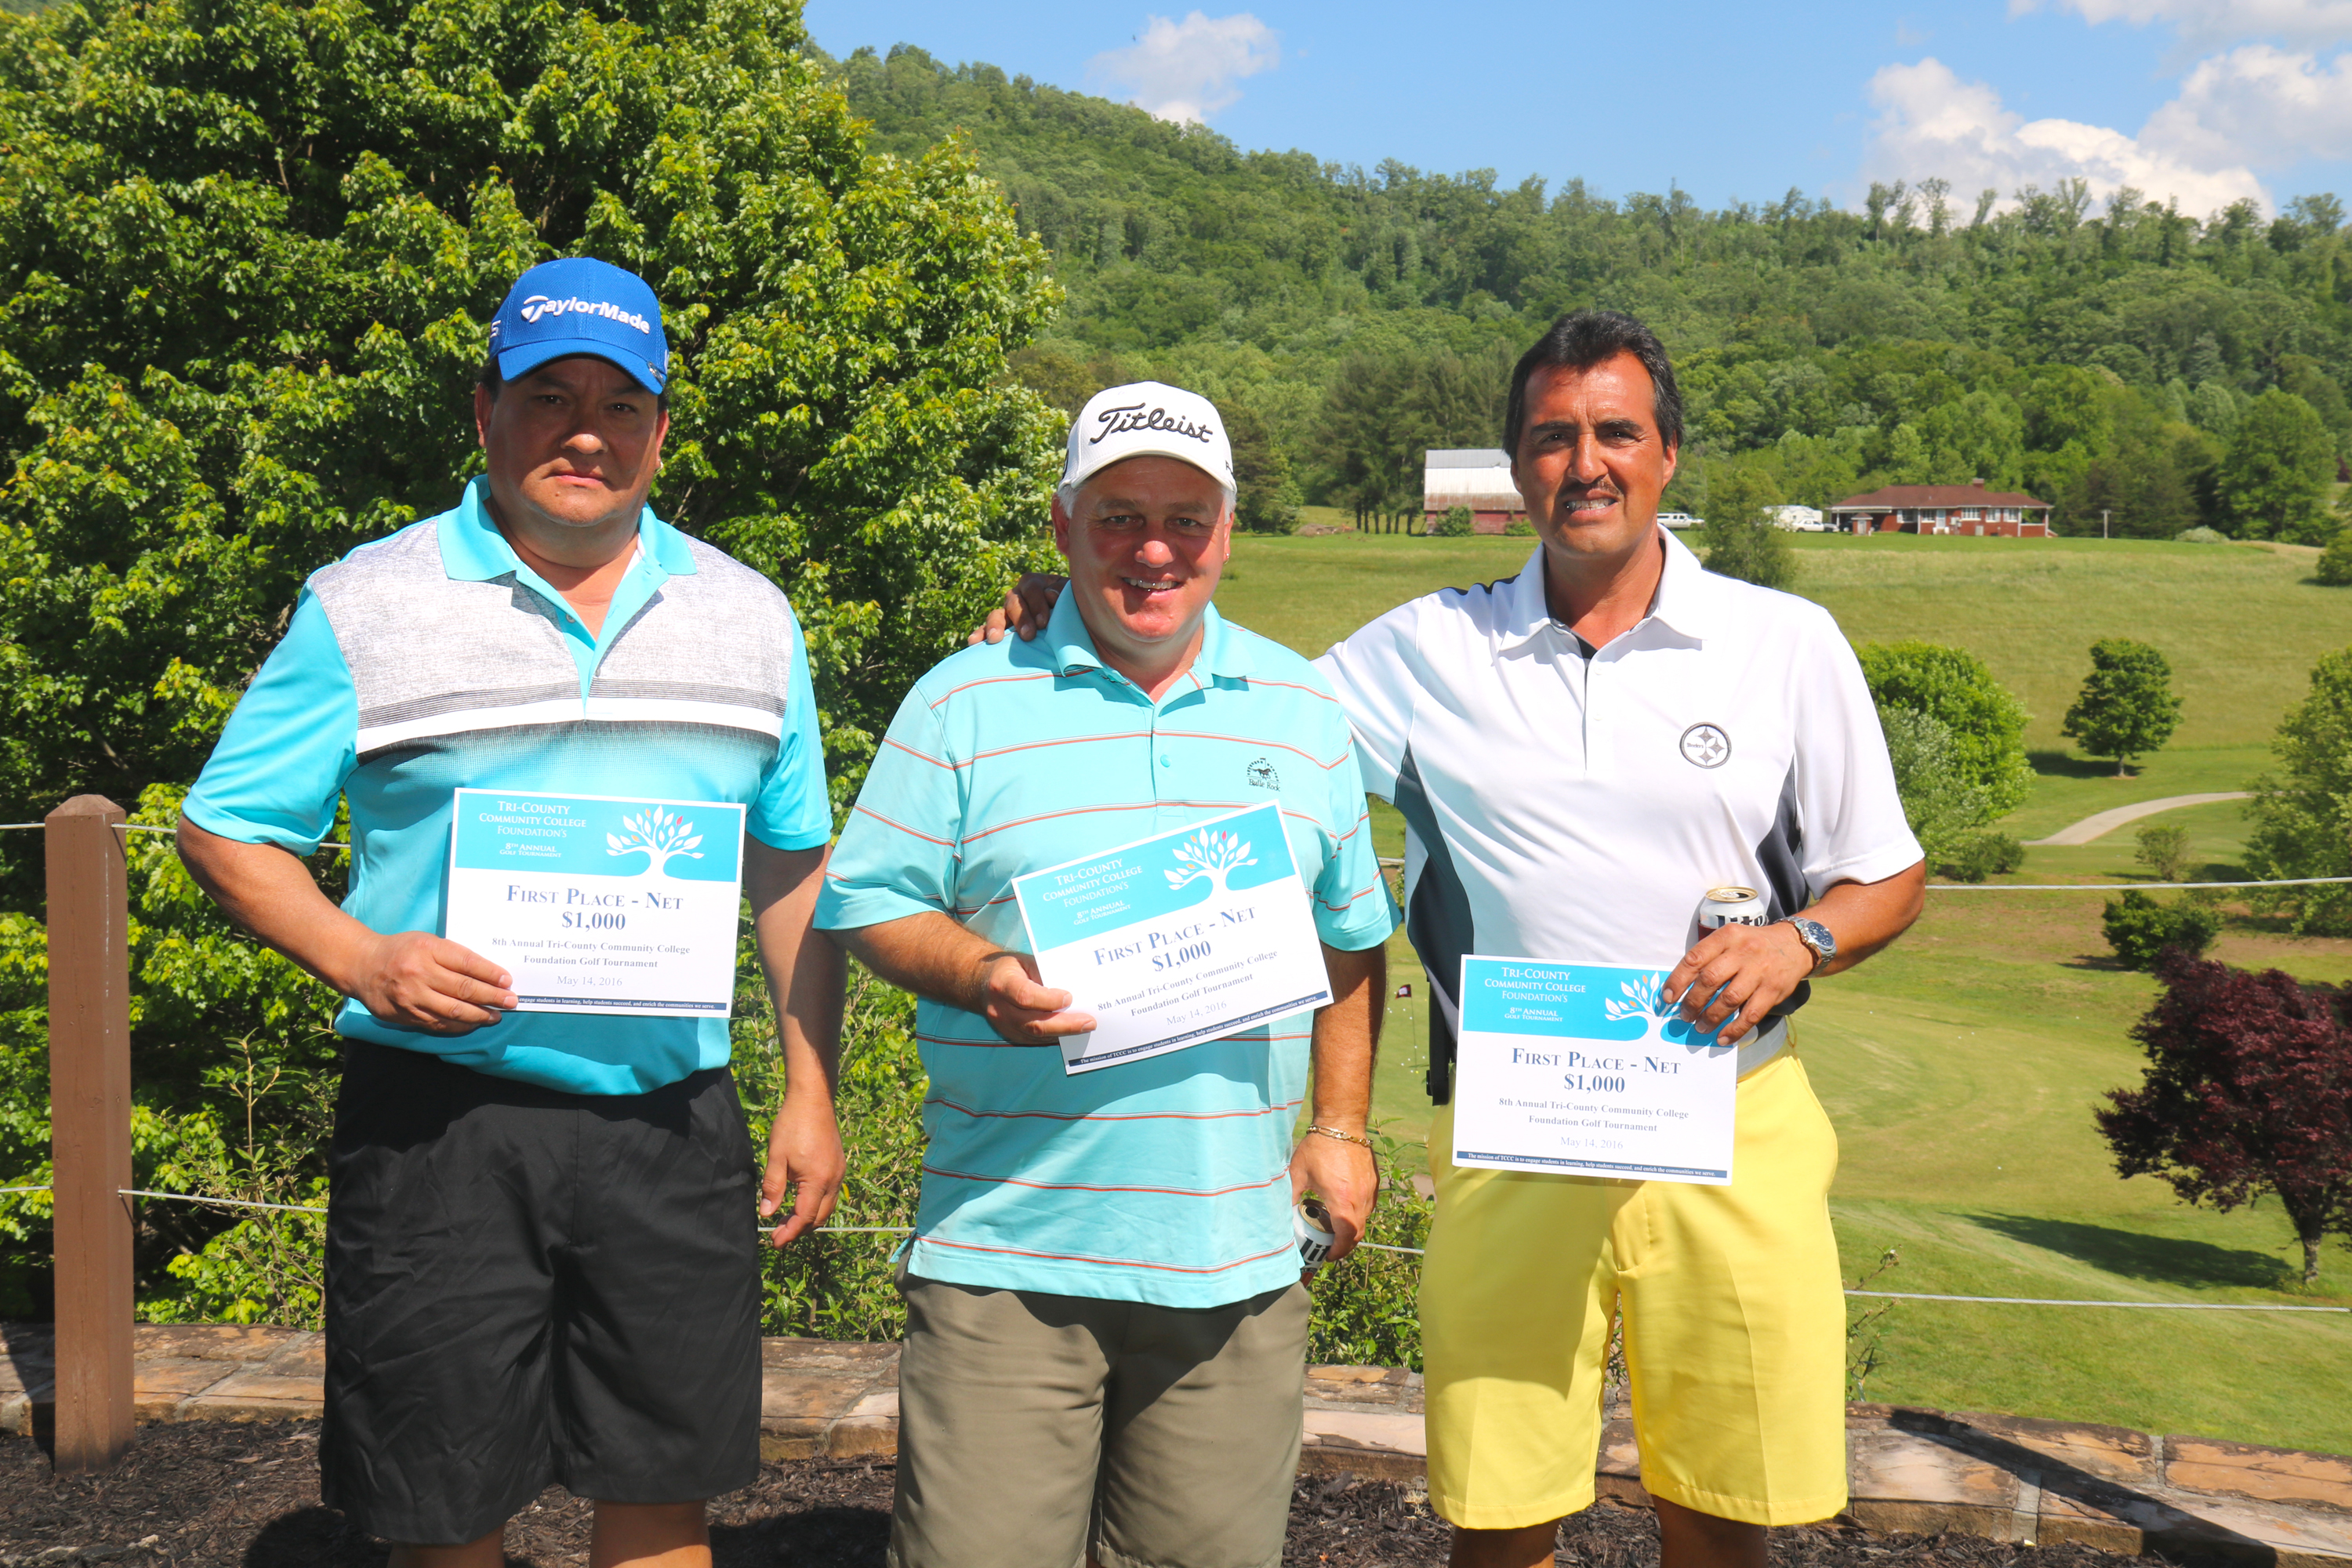 Marty Taylor, Jim Owle, and Tommy Bradley, winners of the $1,000 first place net prize pose with their winnings at the TCCC Foundation's 8th Annual Golf Tournament at The Ridges Country Club in Hayesville on May 14.